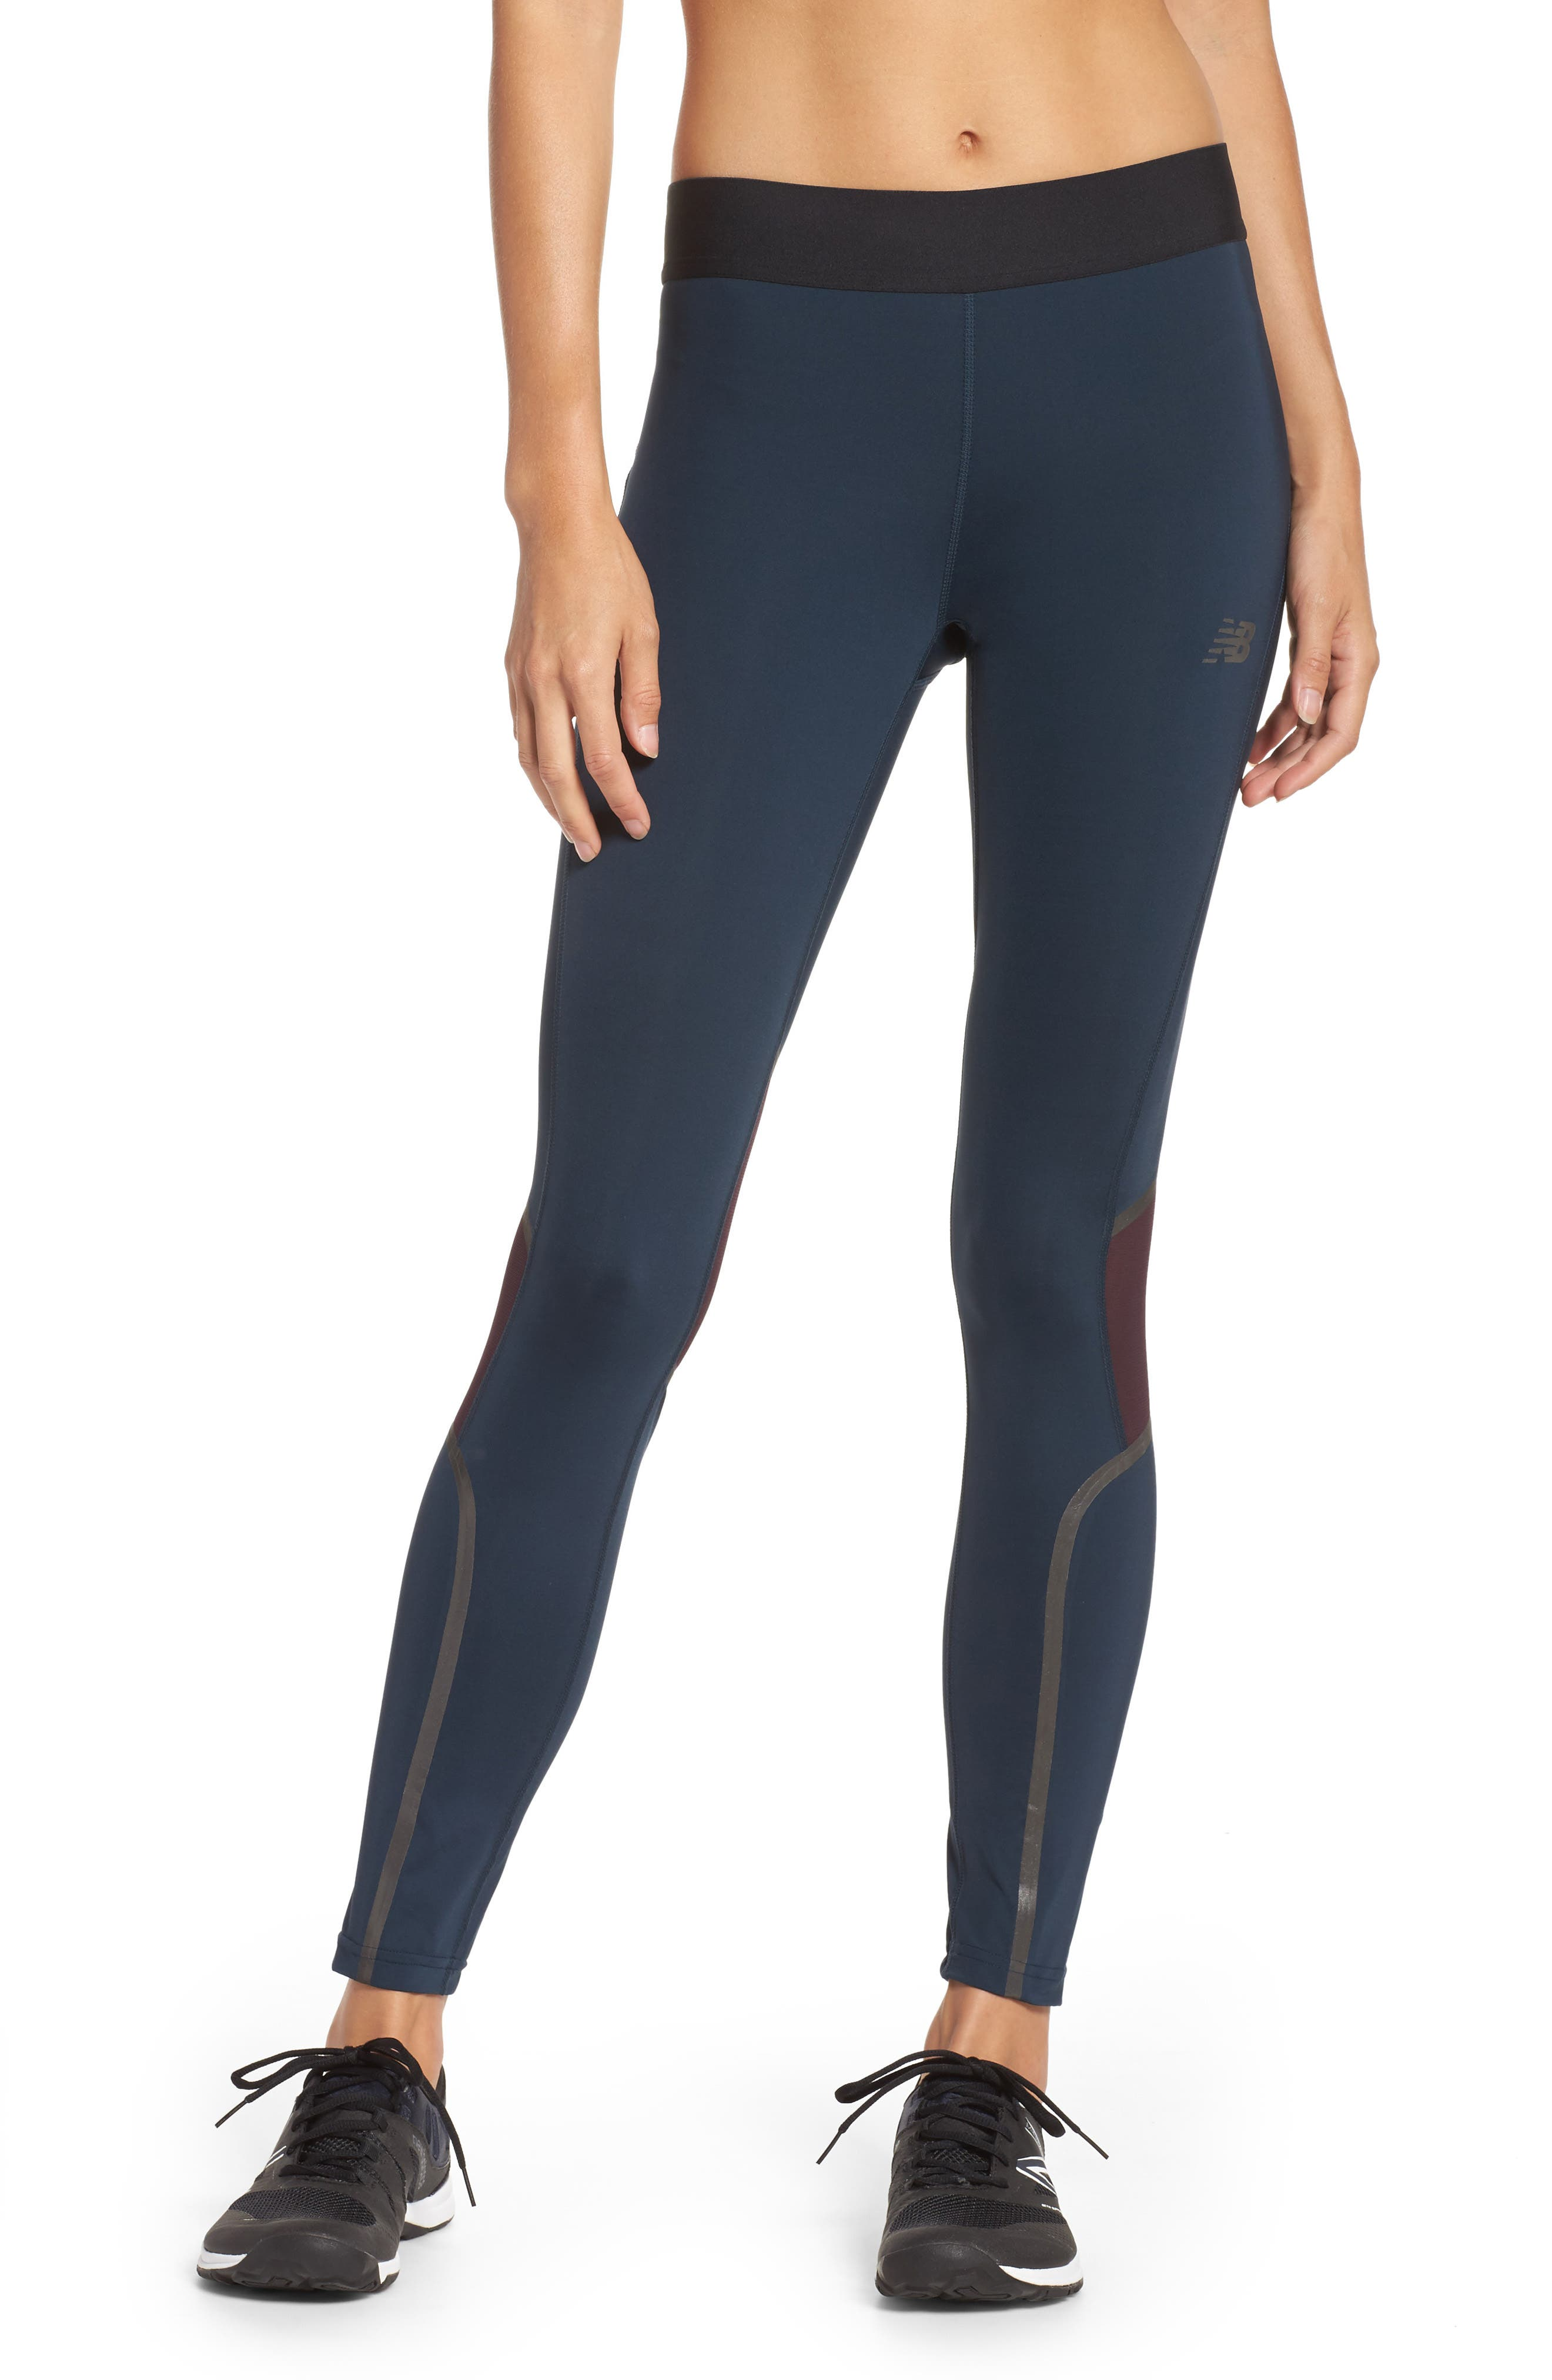 Precision Running Tights,                         Main,                         color, Gxy